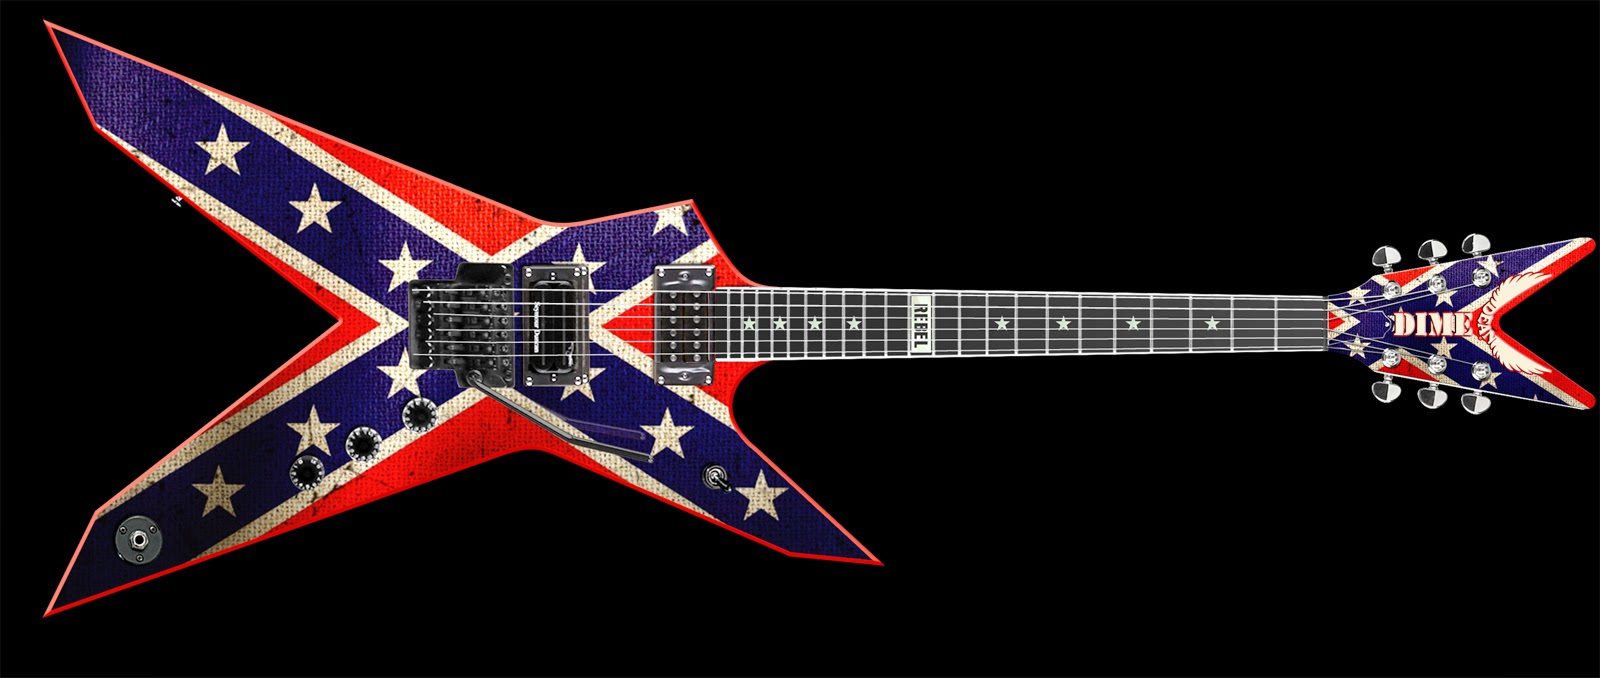 Washburn Dimebag 333 Rebel